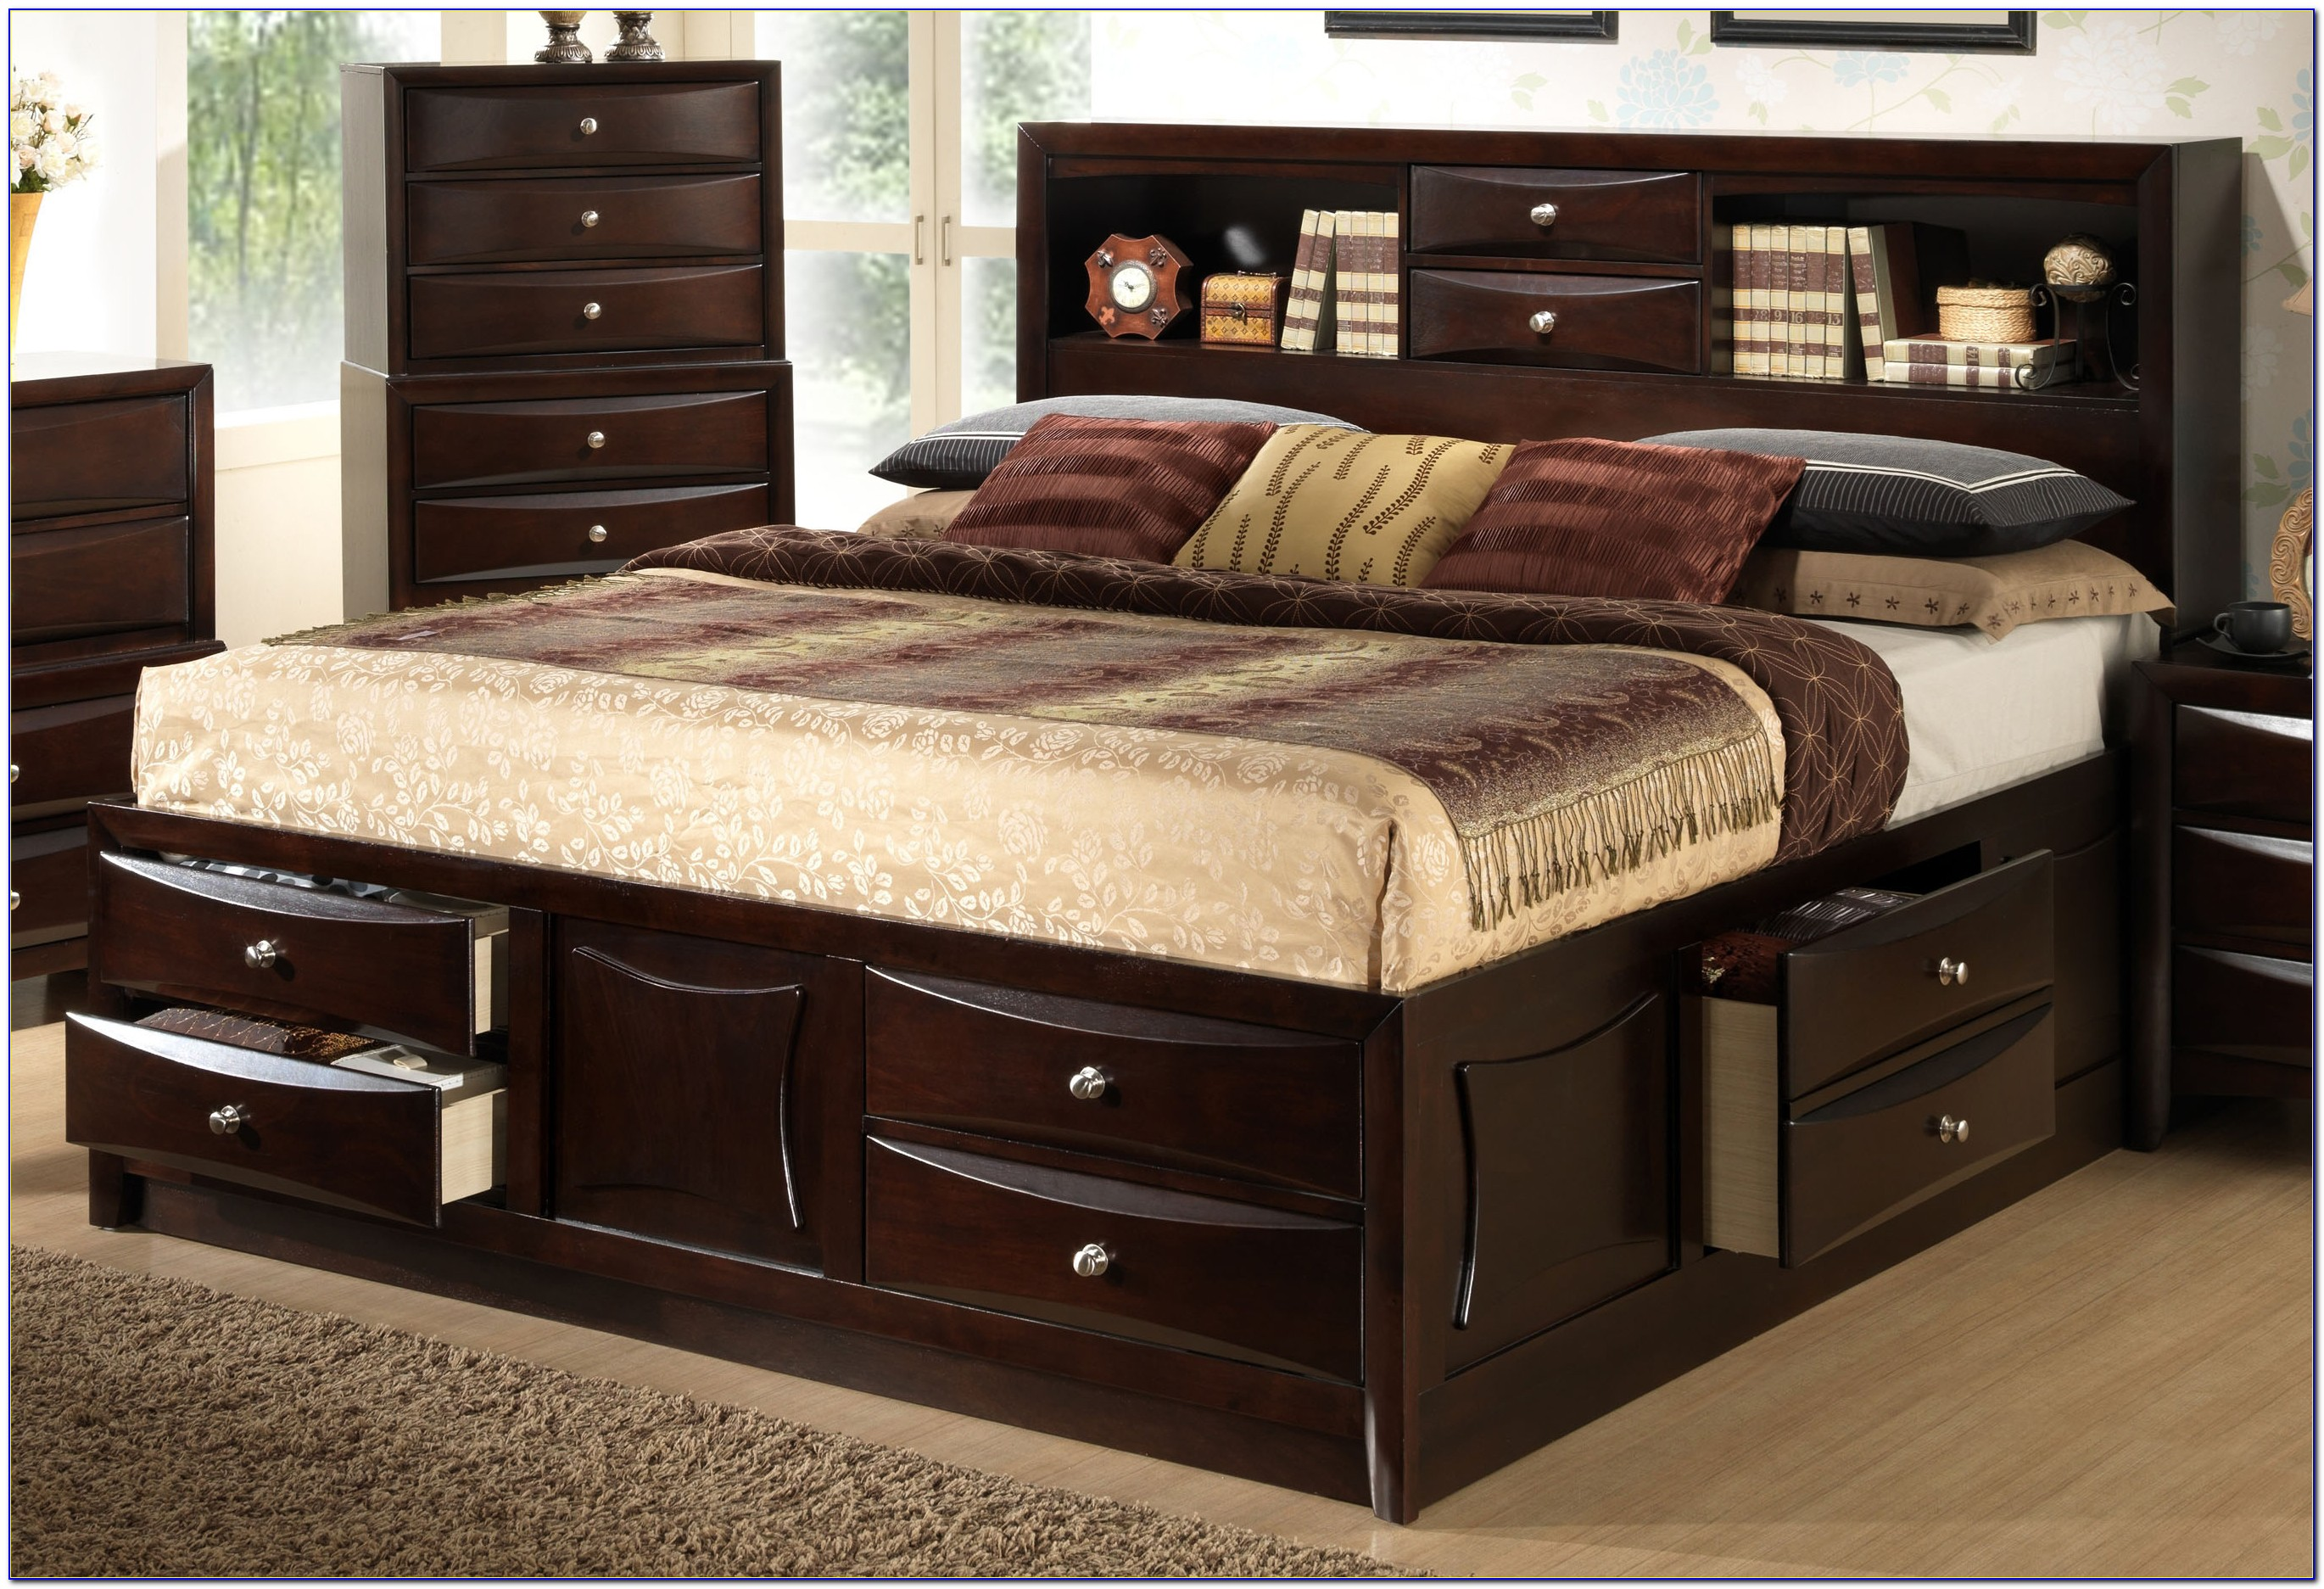 Beds With Storage Headboards King